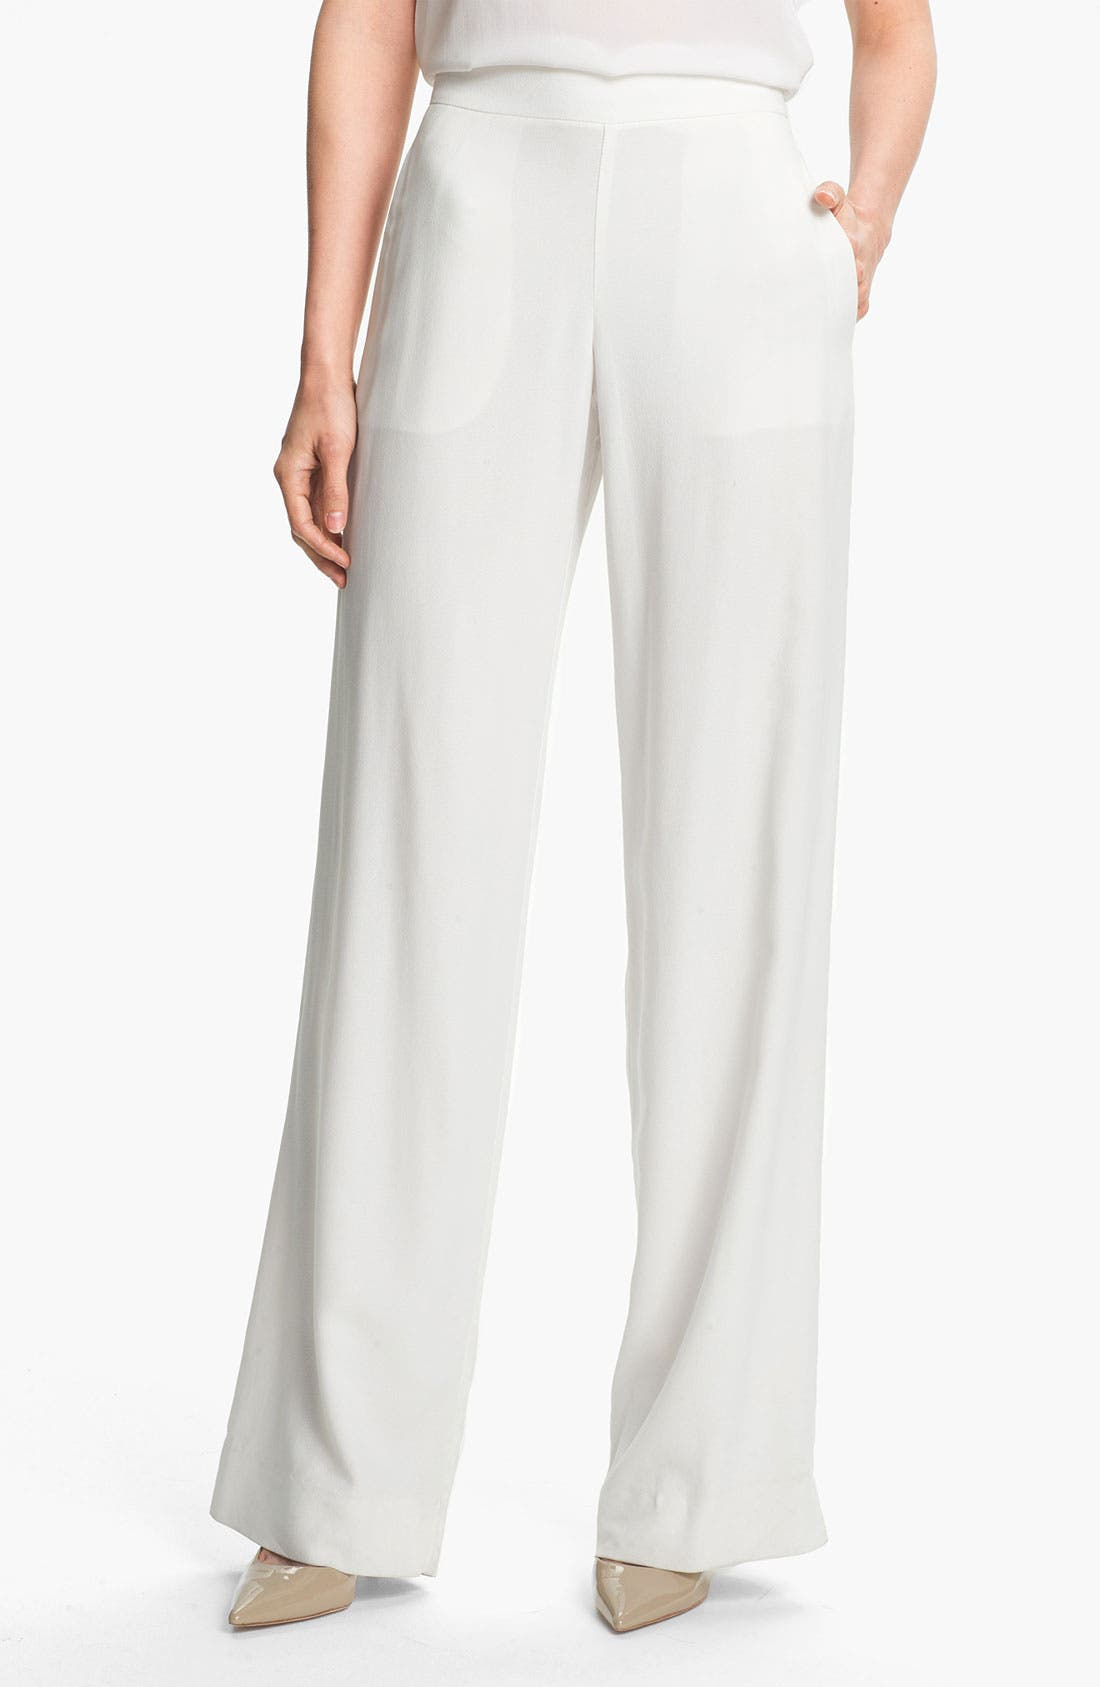 Alternate Image 1 Selected - Theory 'Mitrana' Wide Leg Pants